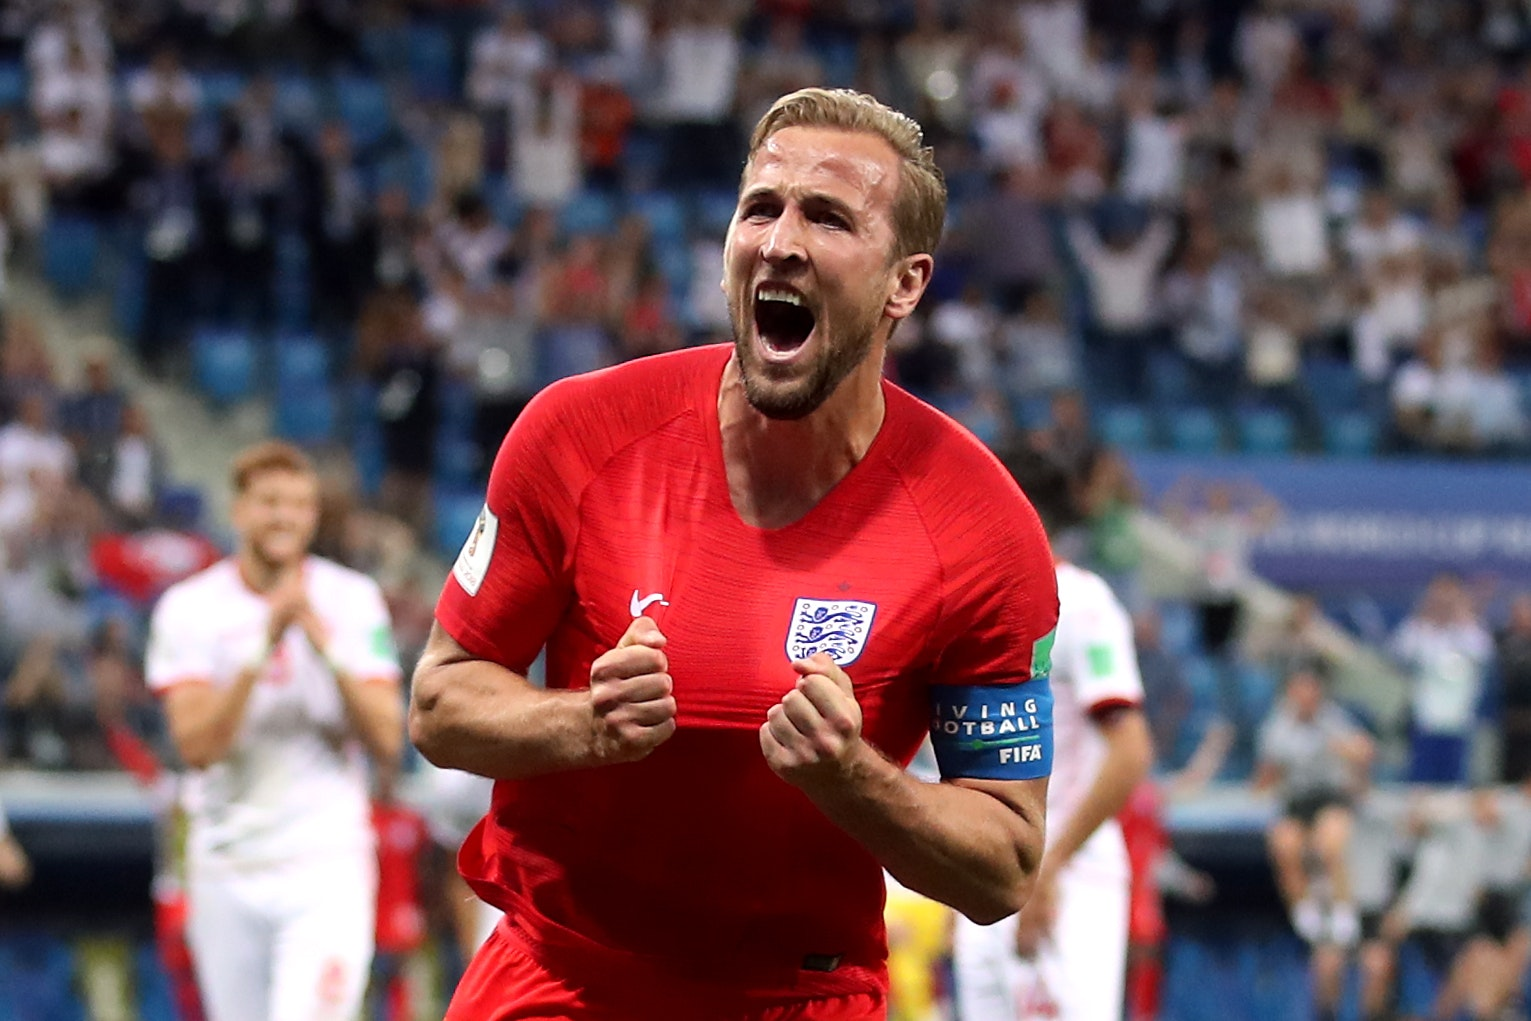 Will Harry Kane lead England to another victory in their World Cup game against Panama on Sunday?